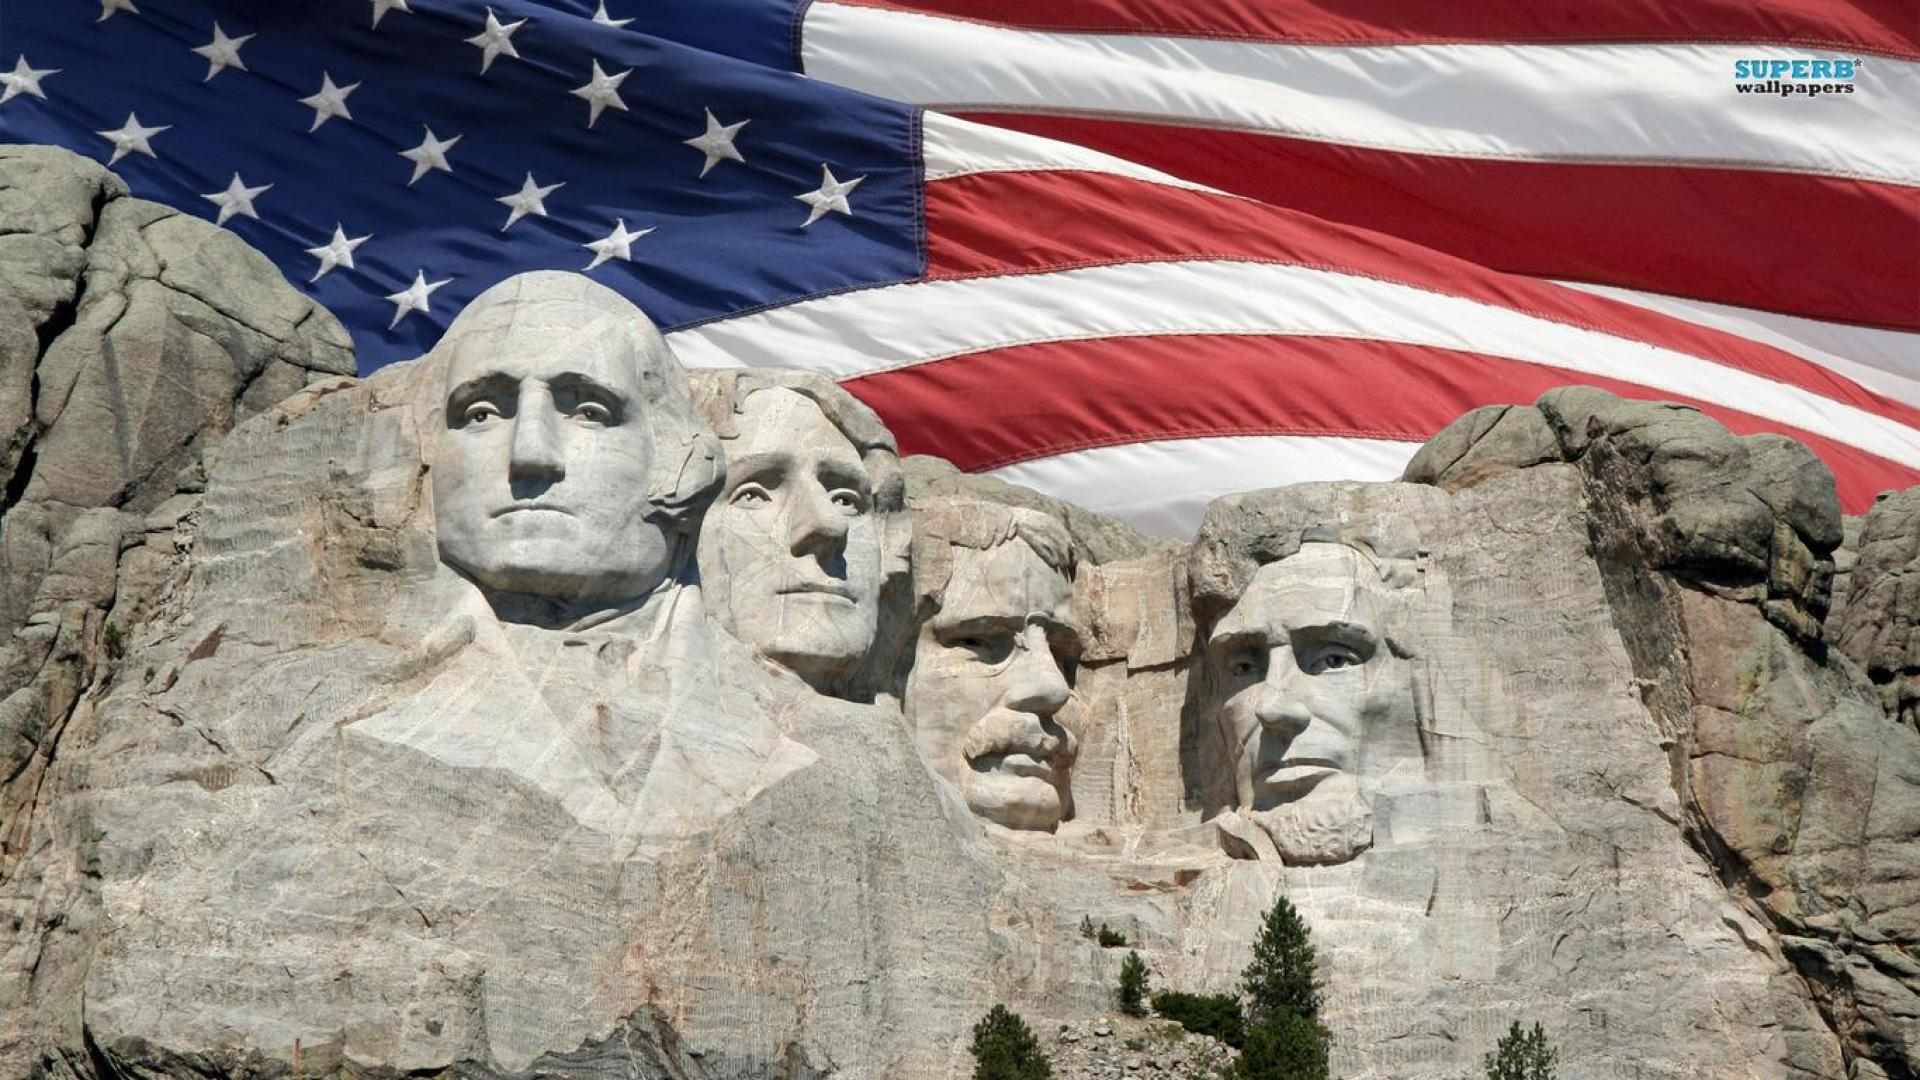 our founding fathers wallpaper   80515   HQ Desktop Wallpapers 1920x1080